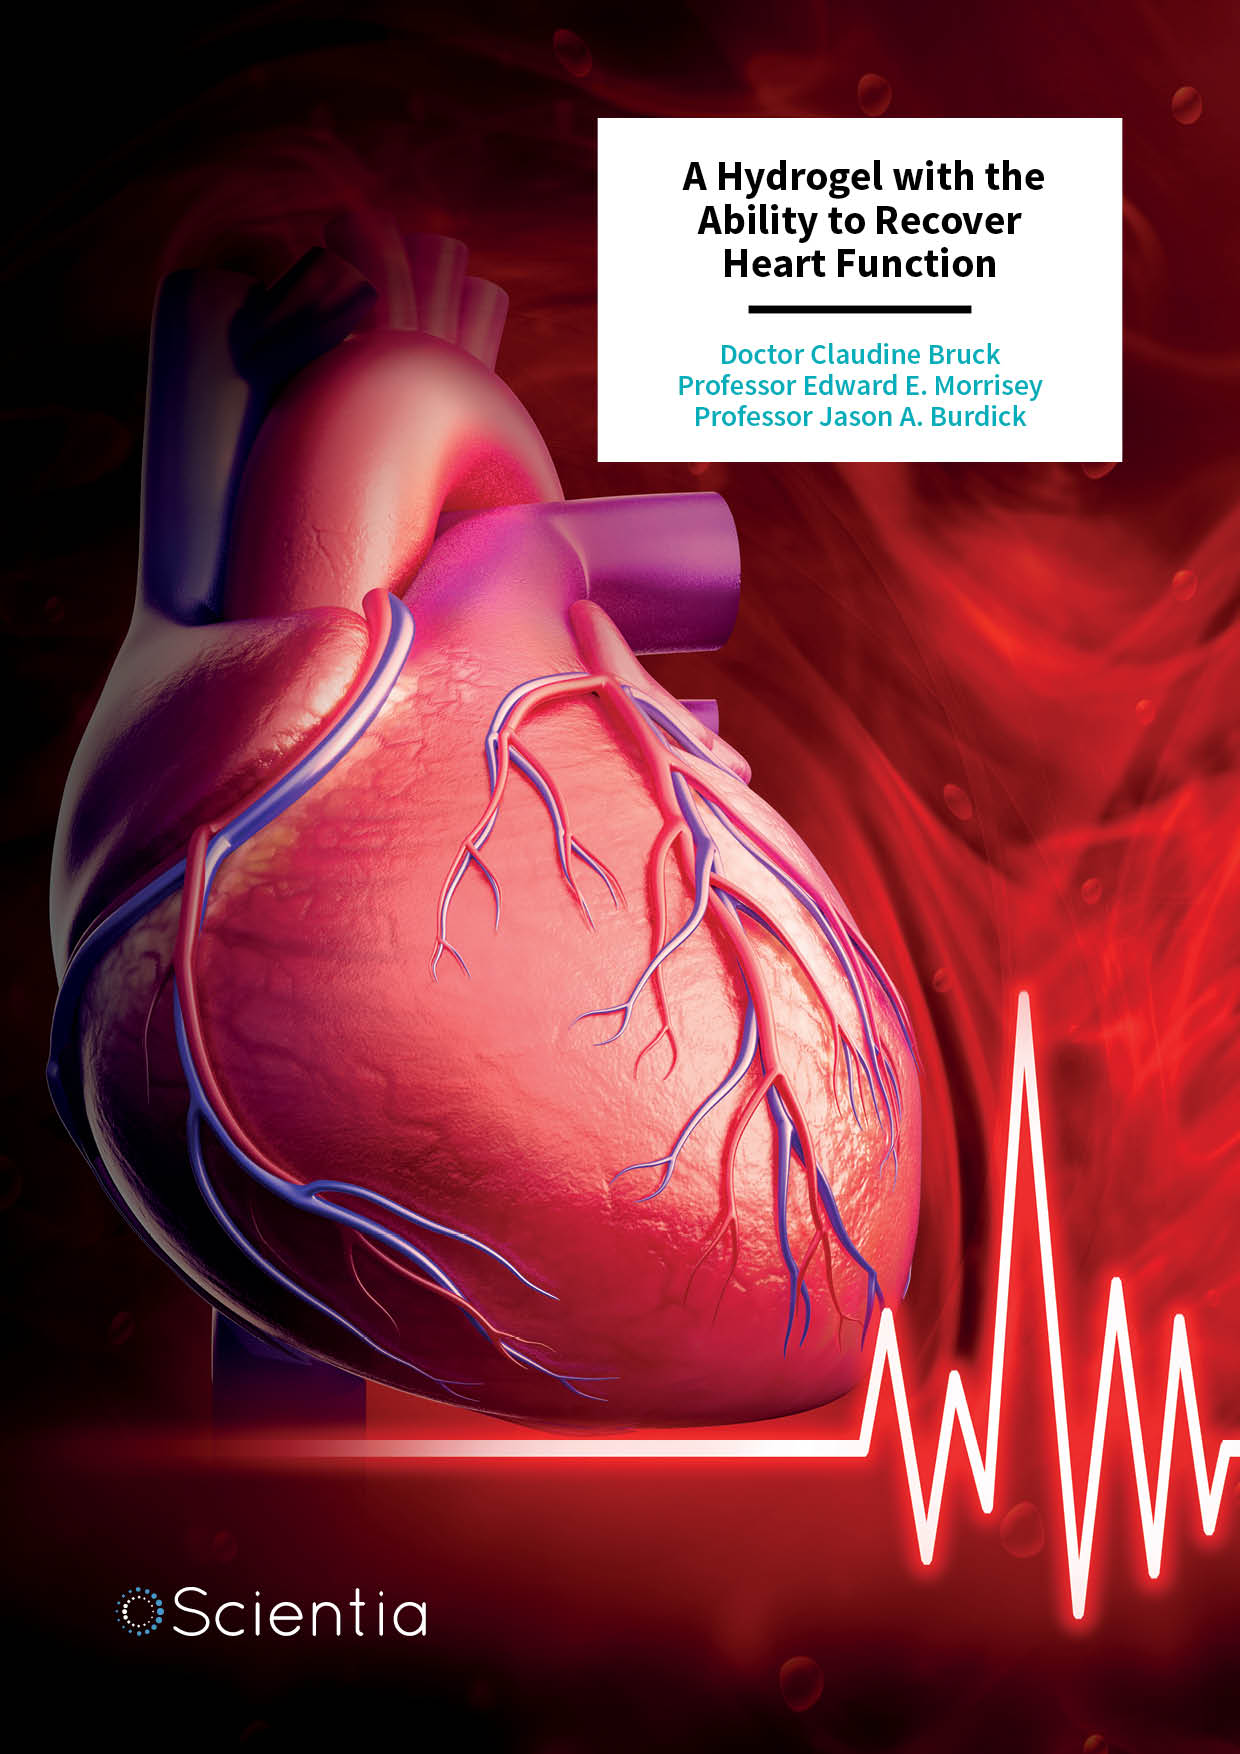 Dr Claudine Bruck | Professor Edward Morrisey | Professor Jason Burdick – A Hydrogel with the Ability to Recover Heart Function